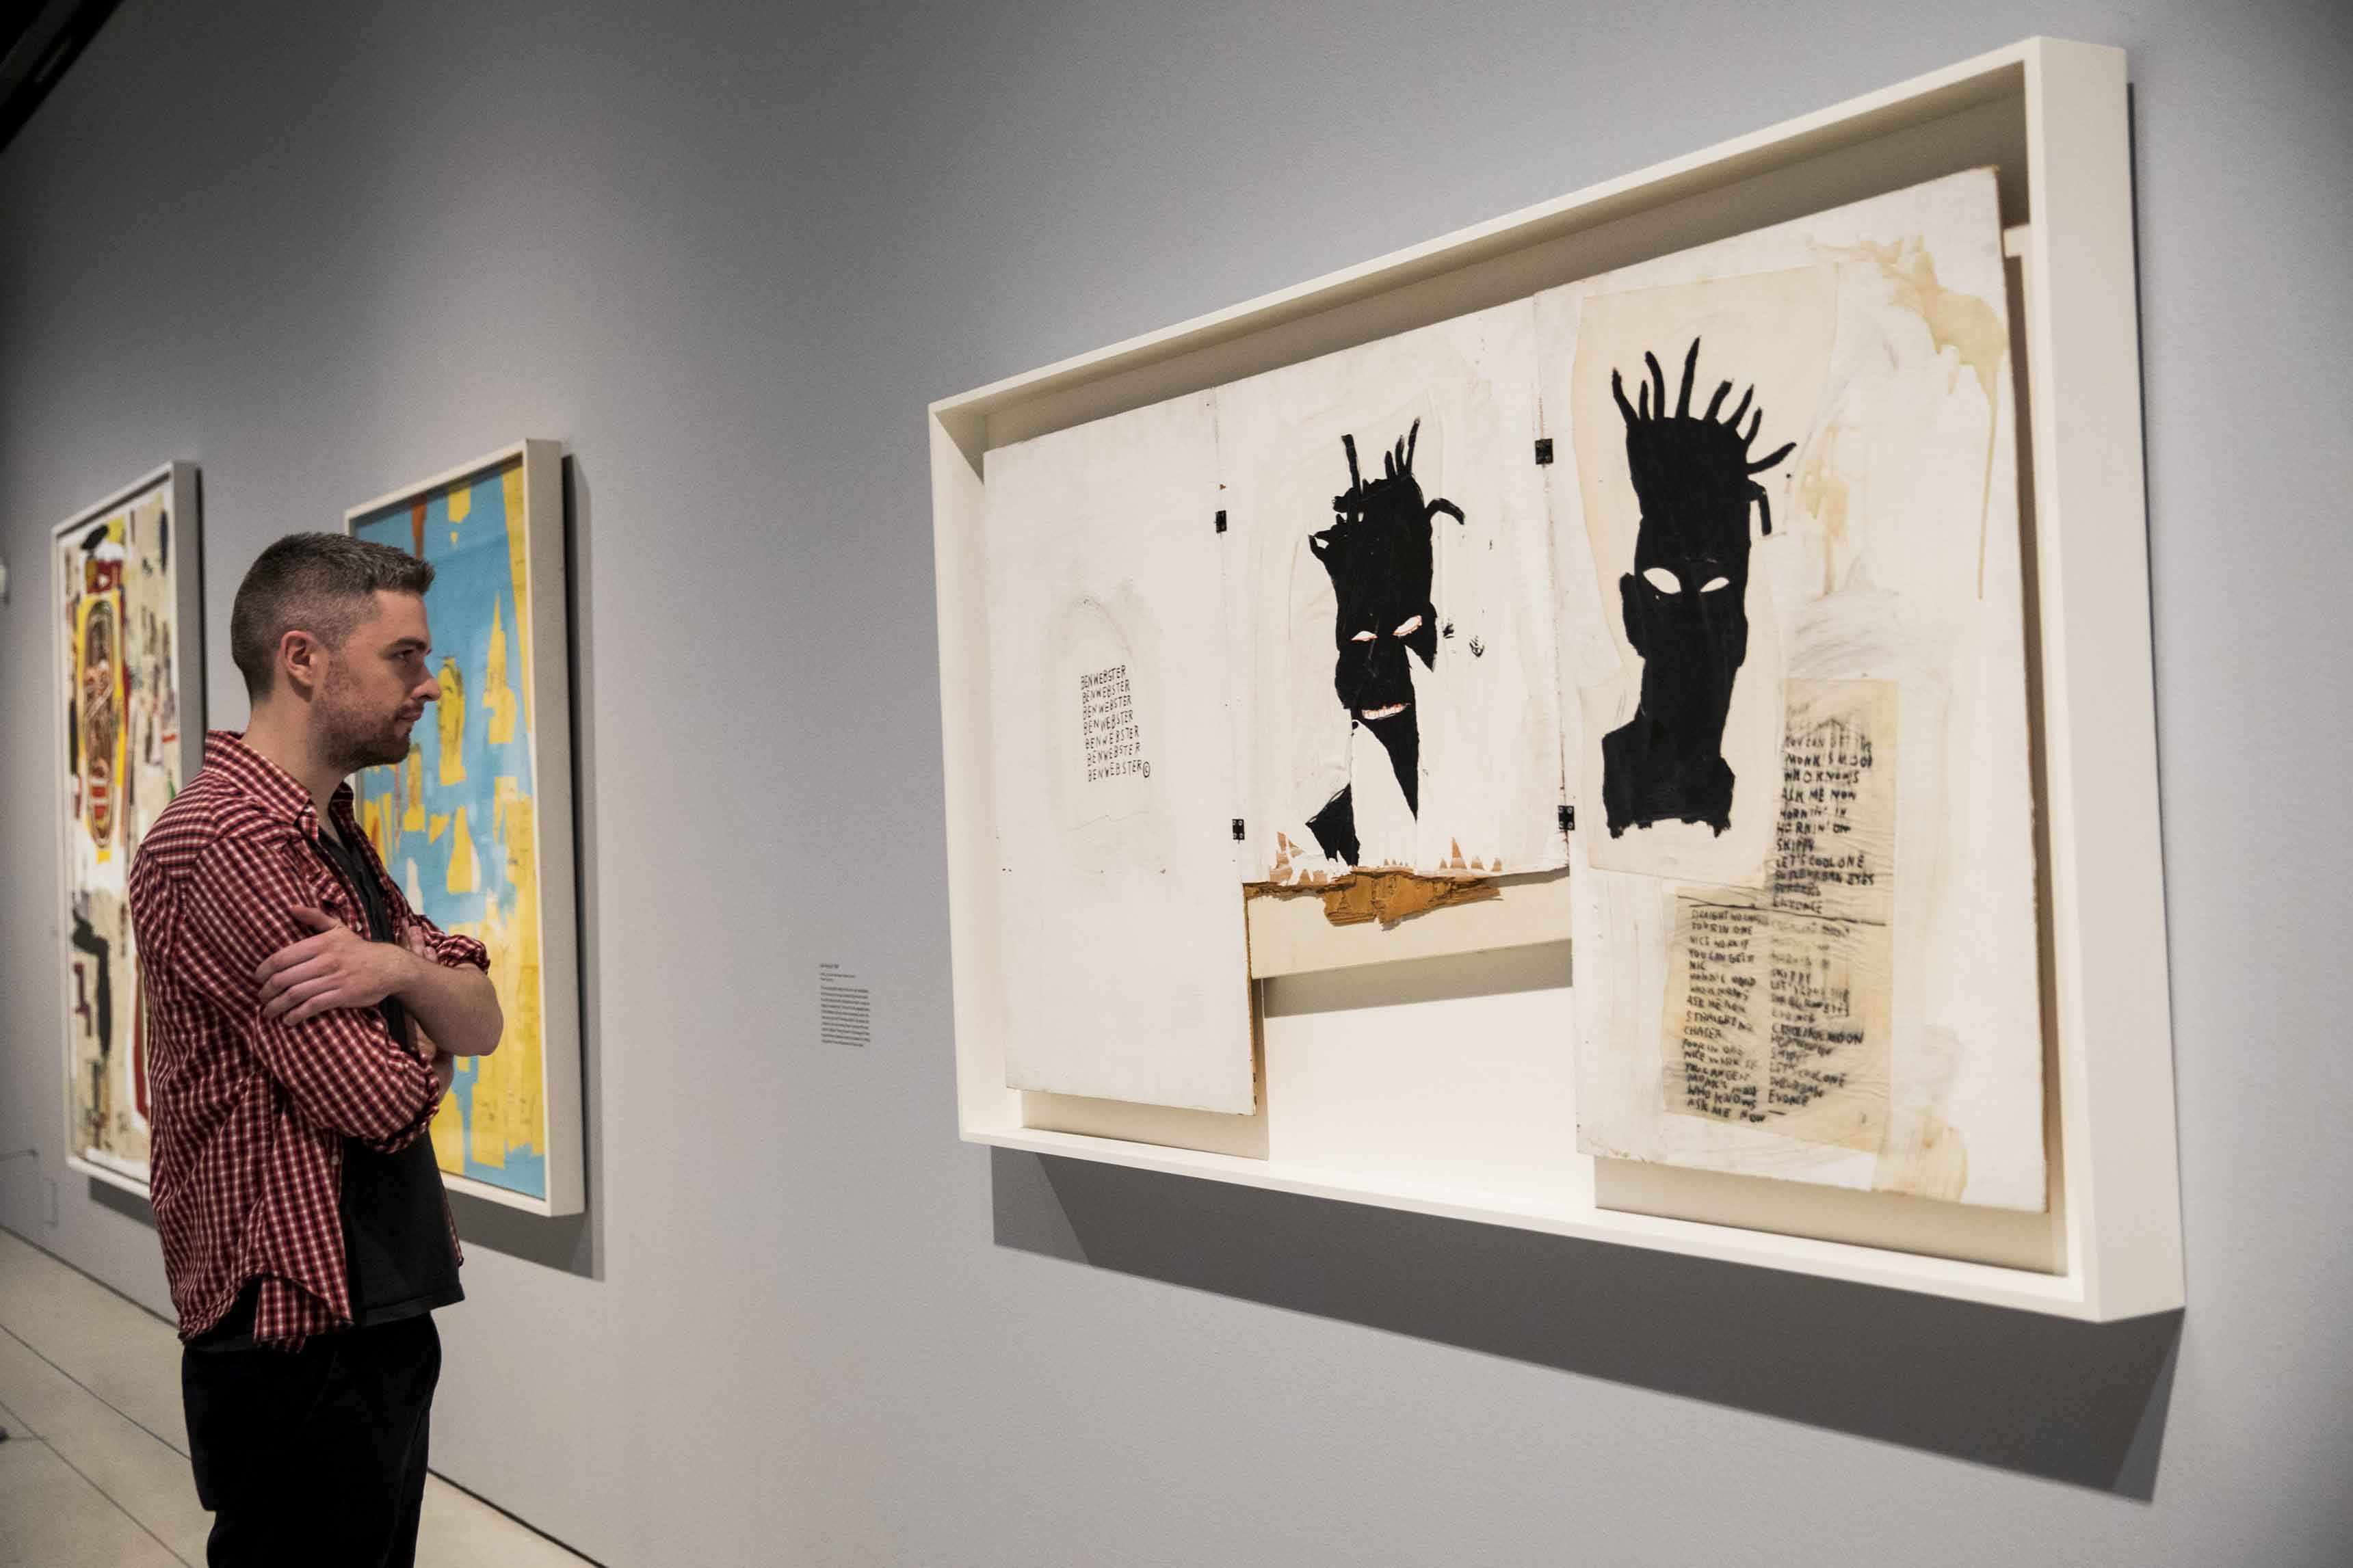 Basquiat: Boom For Real Installation view Barbican Art Gallery 21 September 2017 – 28 January 2018 © Tristan Fewings / Getty Images Artwork: Jean-Michel Basquiat Self-Portrait, 1983, Private collection. © The Estate of Jean-Michel Basquiat. Licensed by Artestar, New York